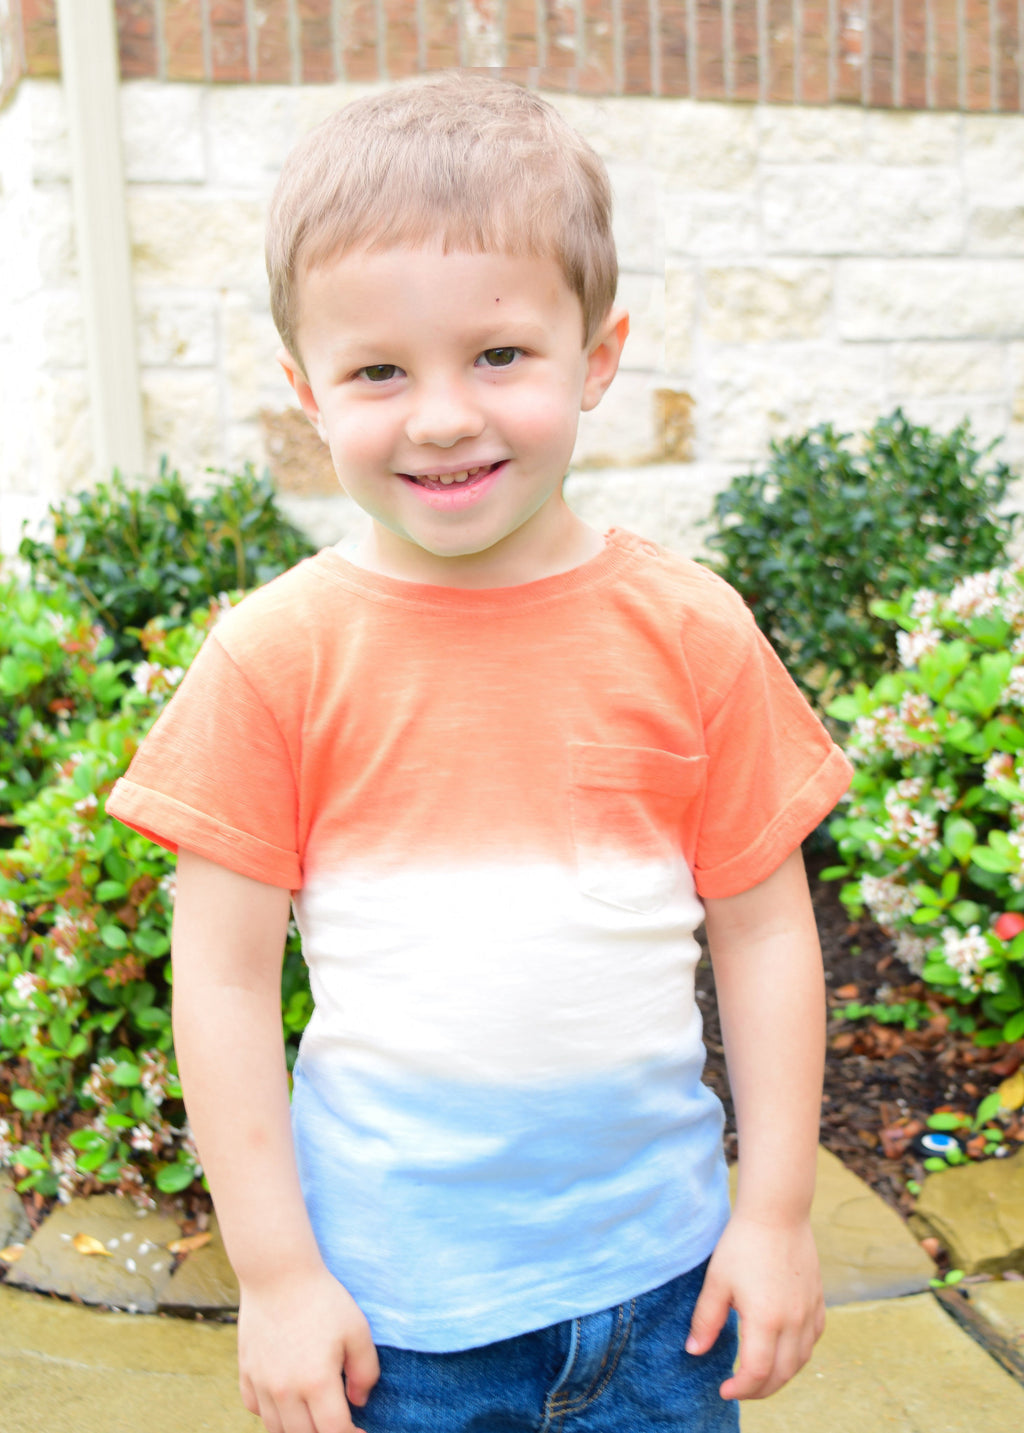 Tri-Color Boys' Sublimated Tee: Salmon, White, and Blue